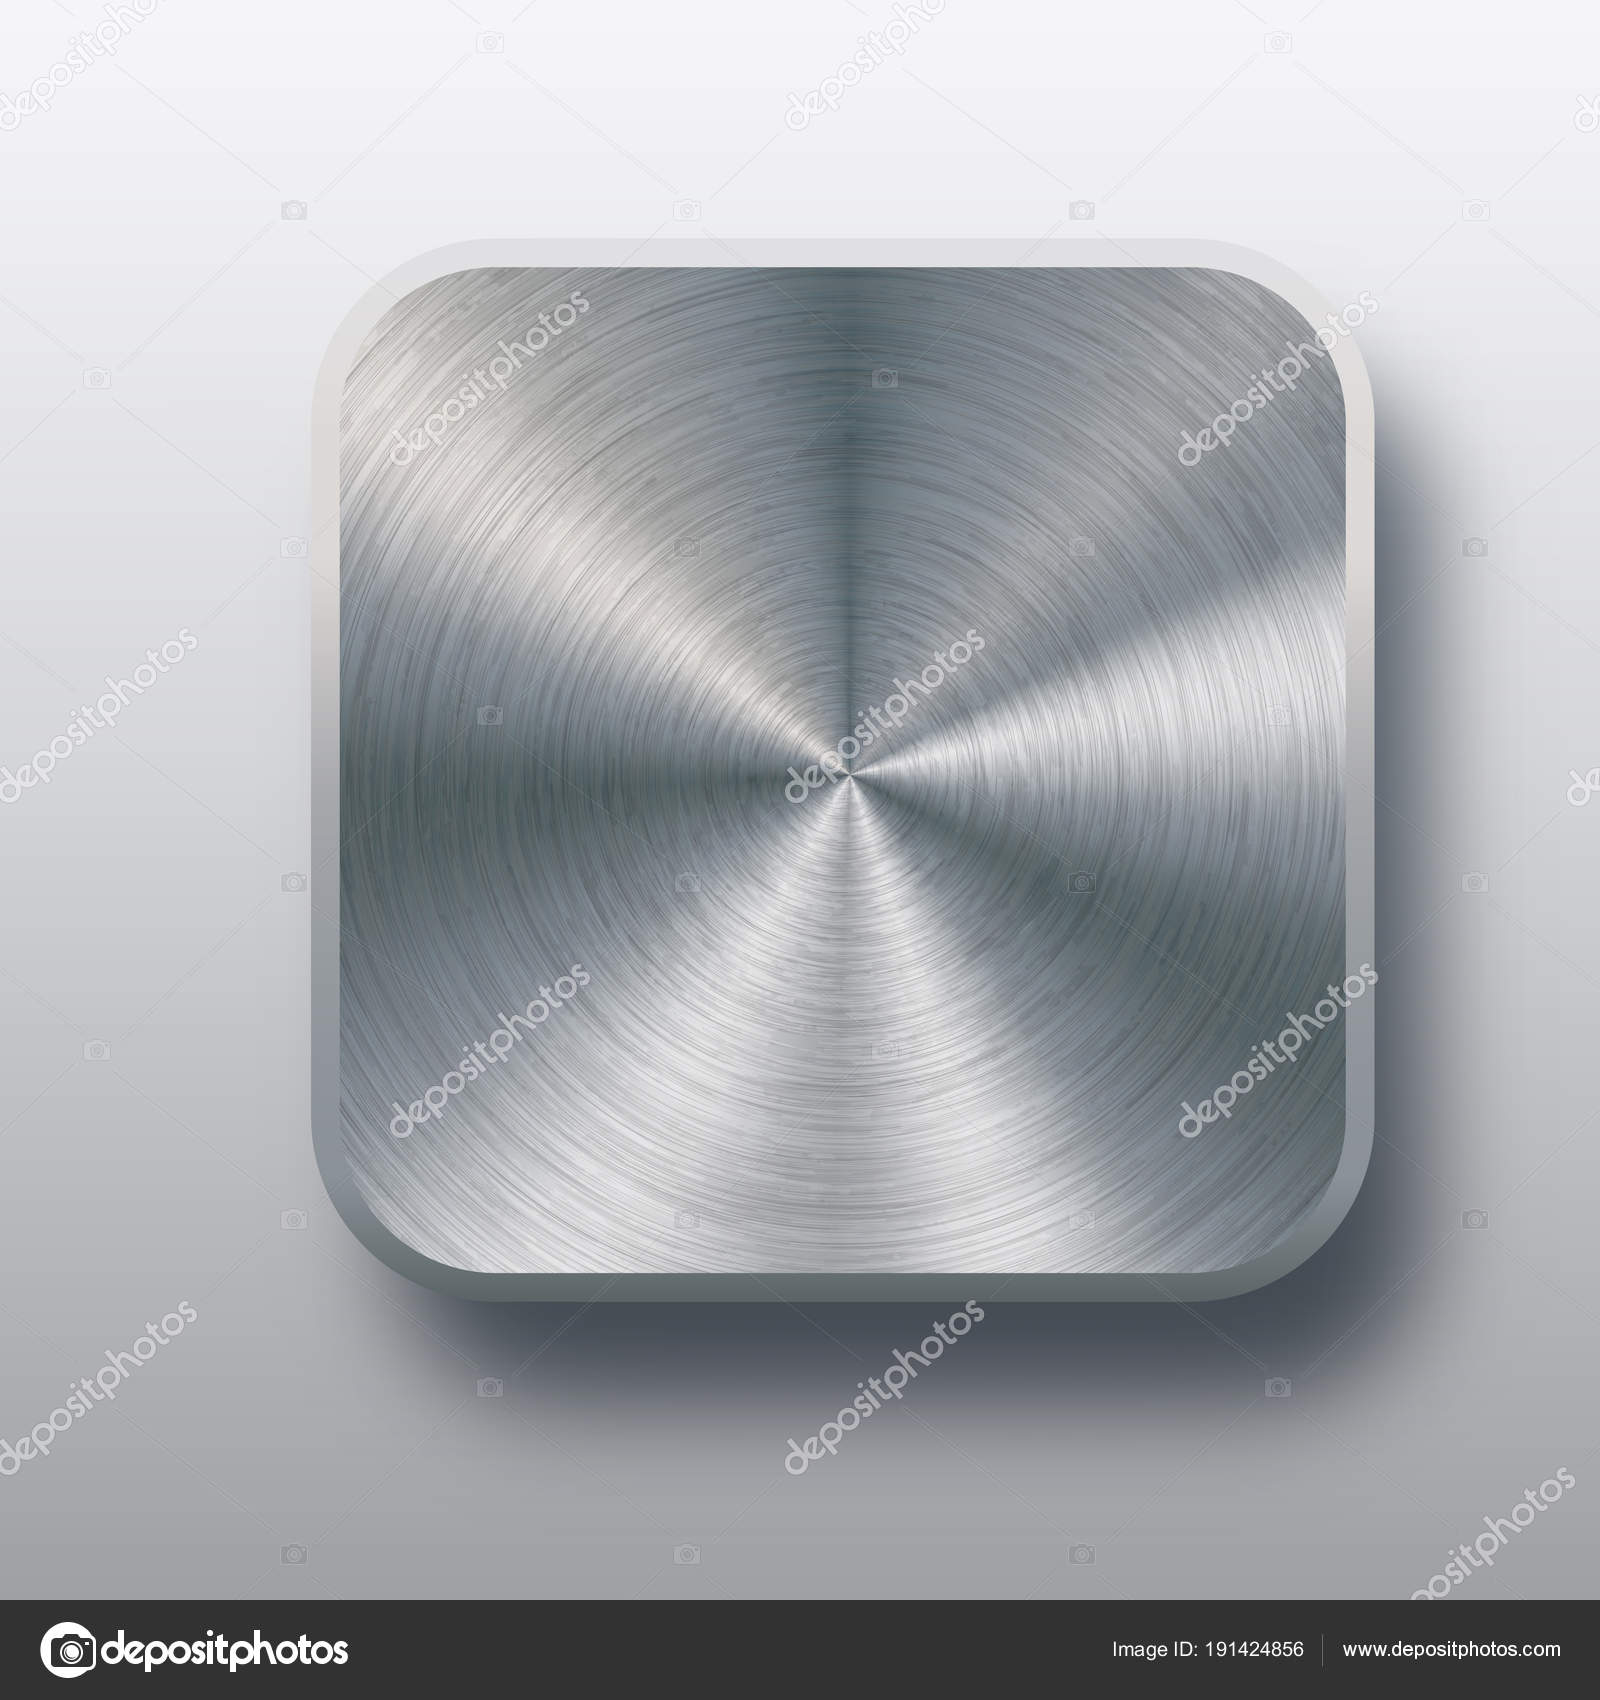 Abstract chrome shape photo